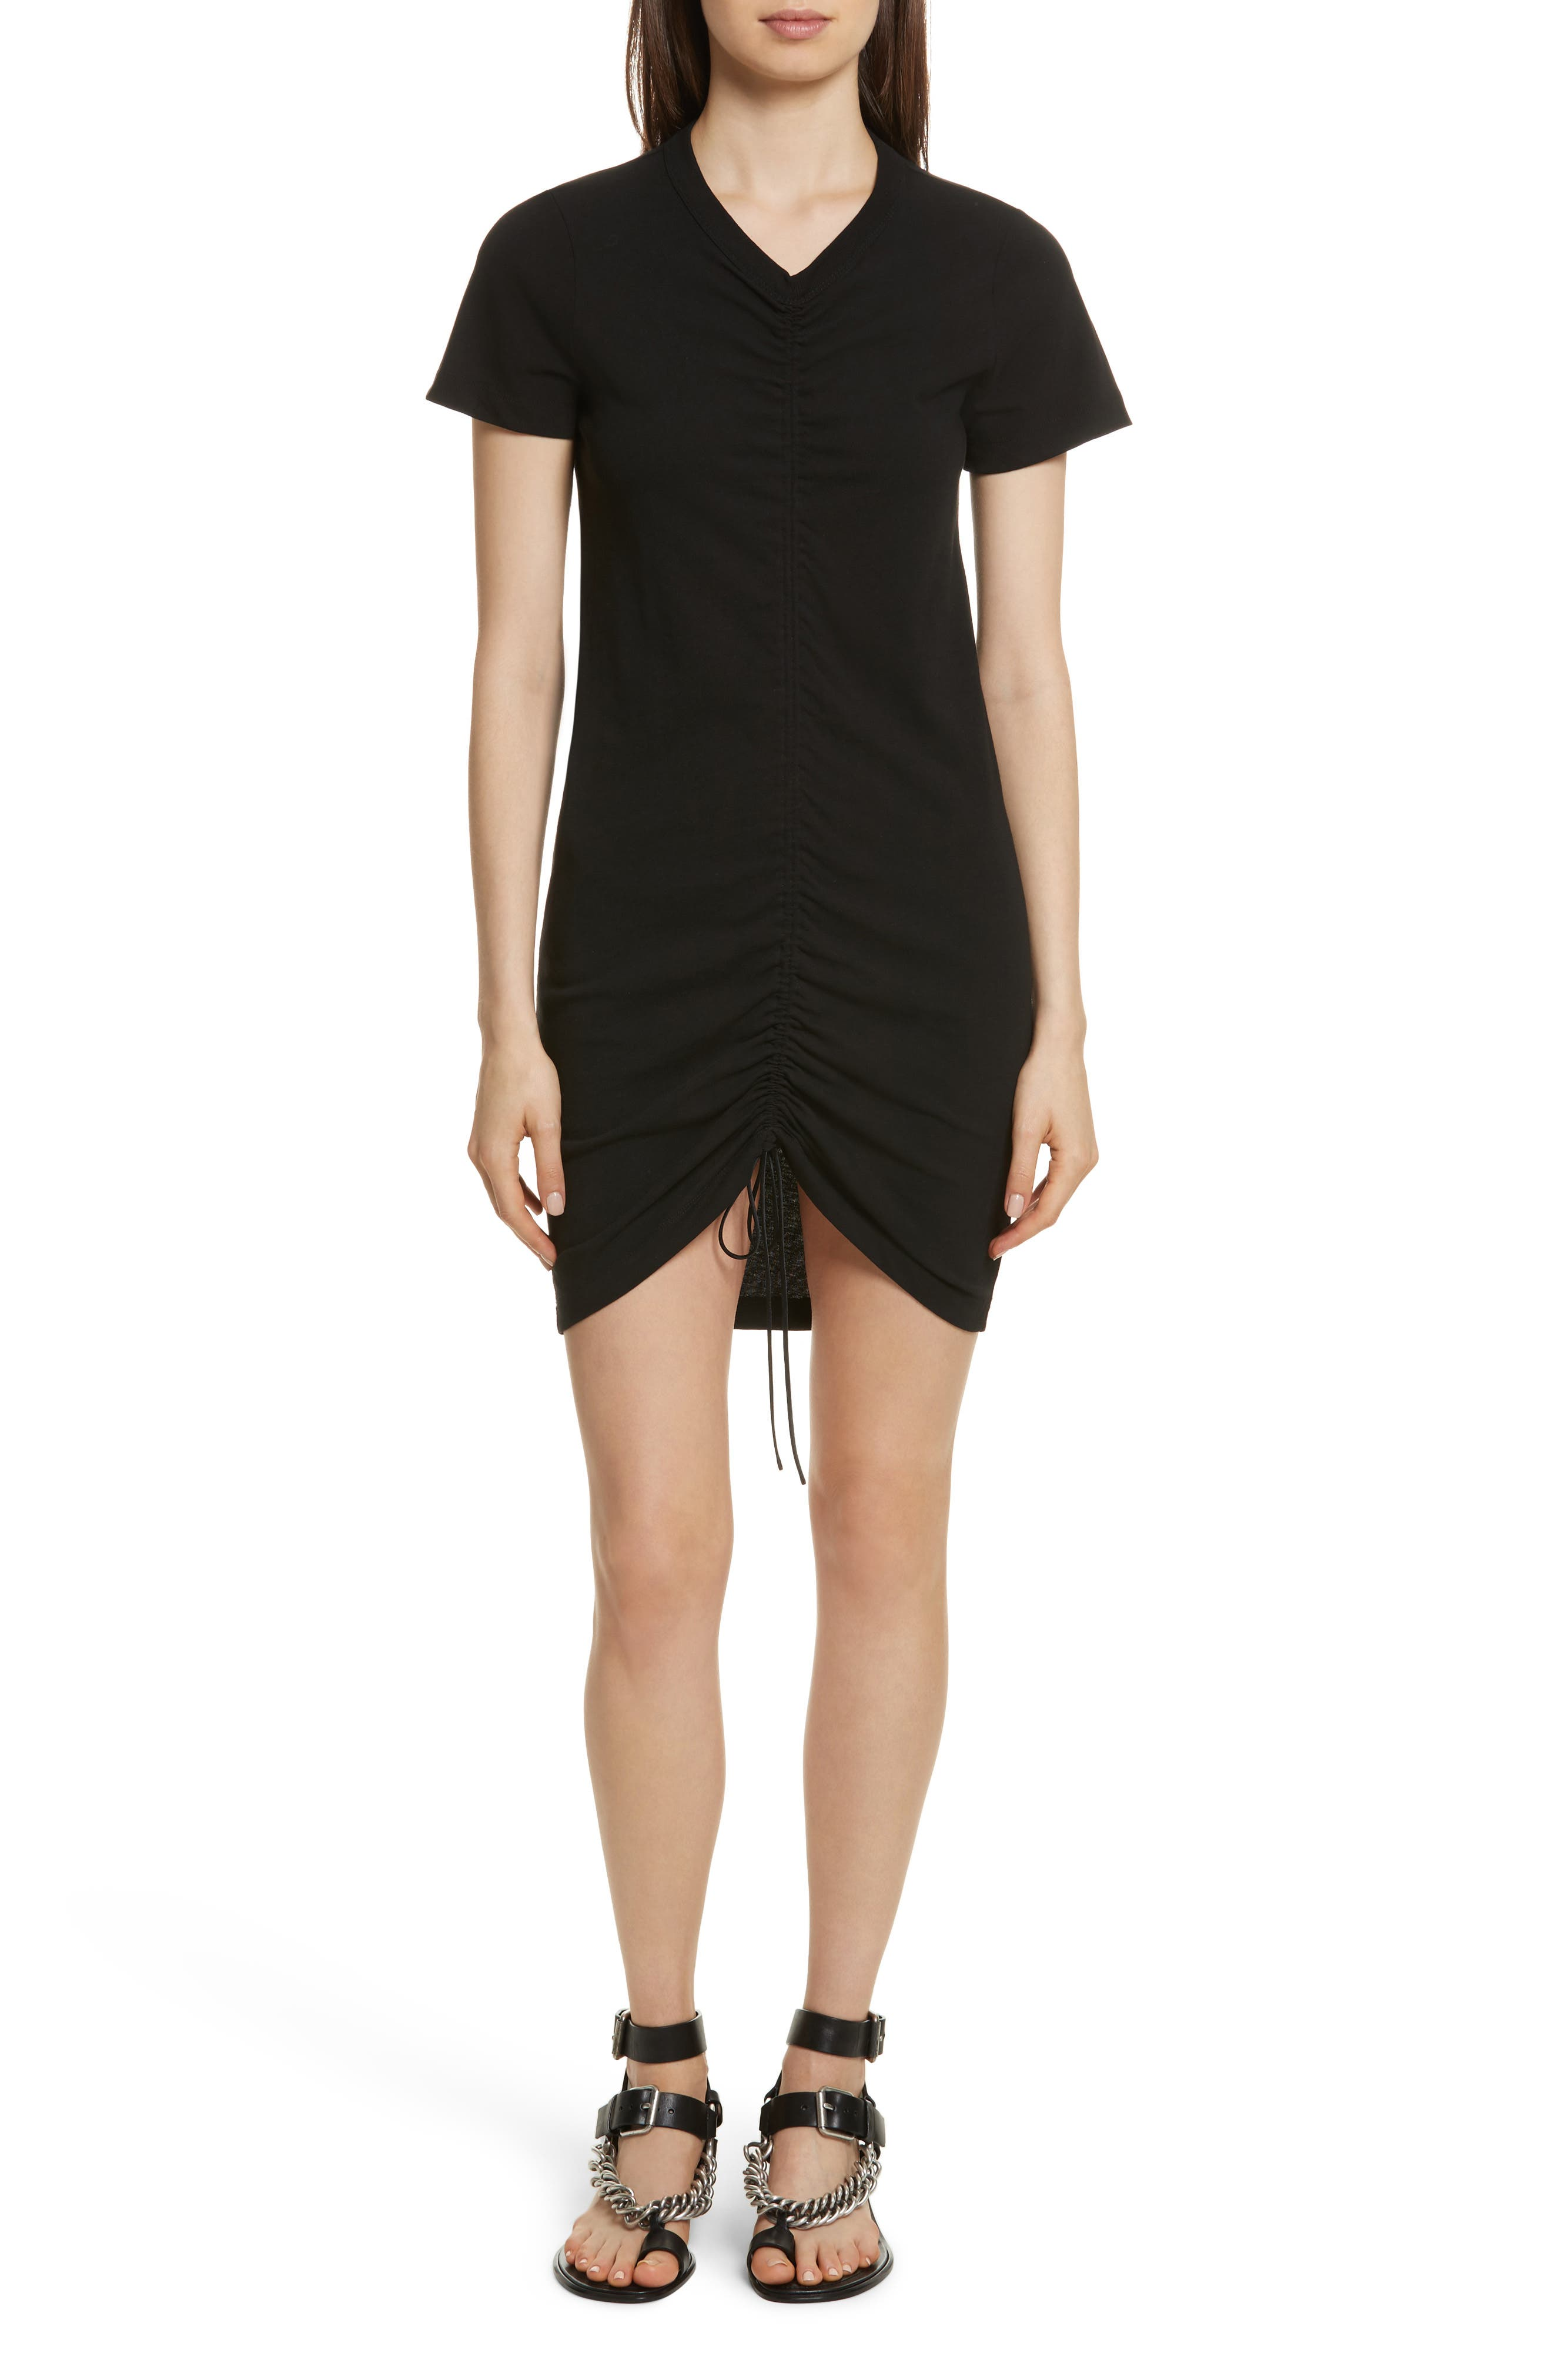 Alternate Image 1 Selected - T by Alexander Wang Gathered T-Shirt Dress